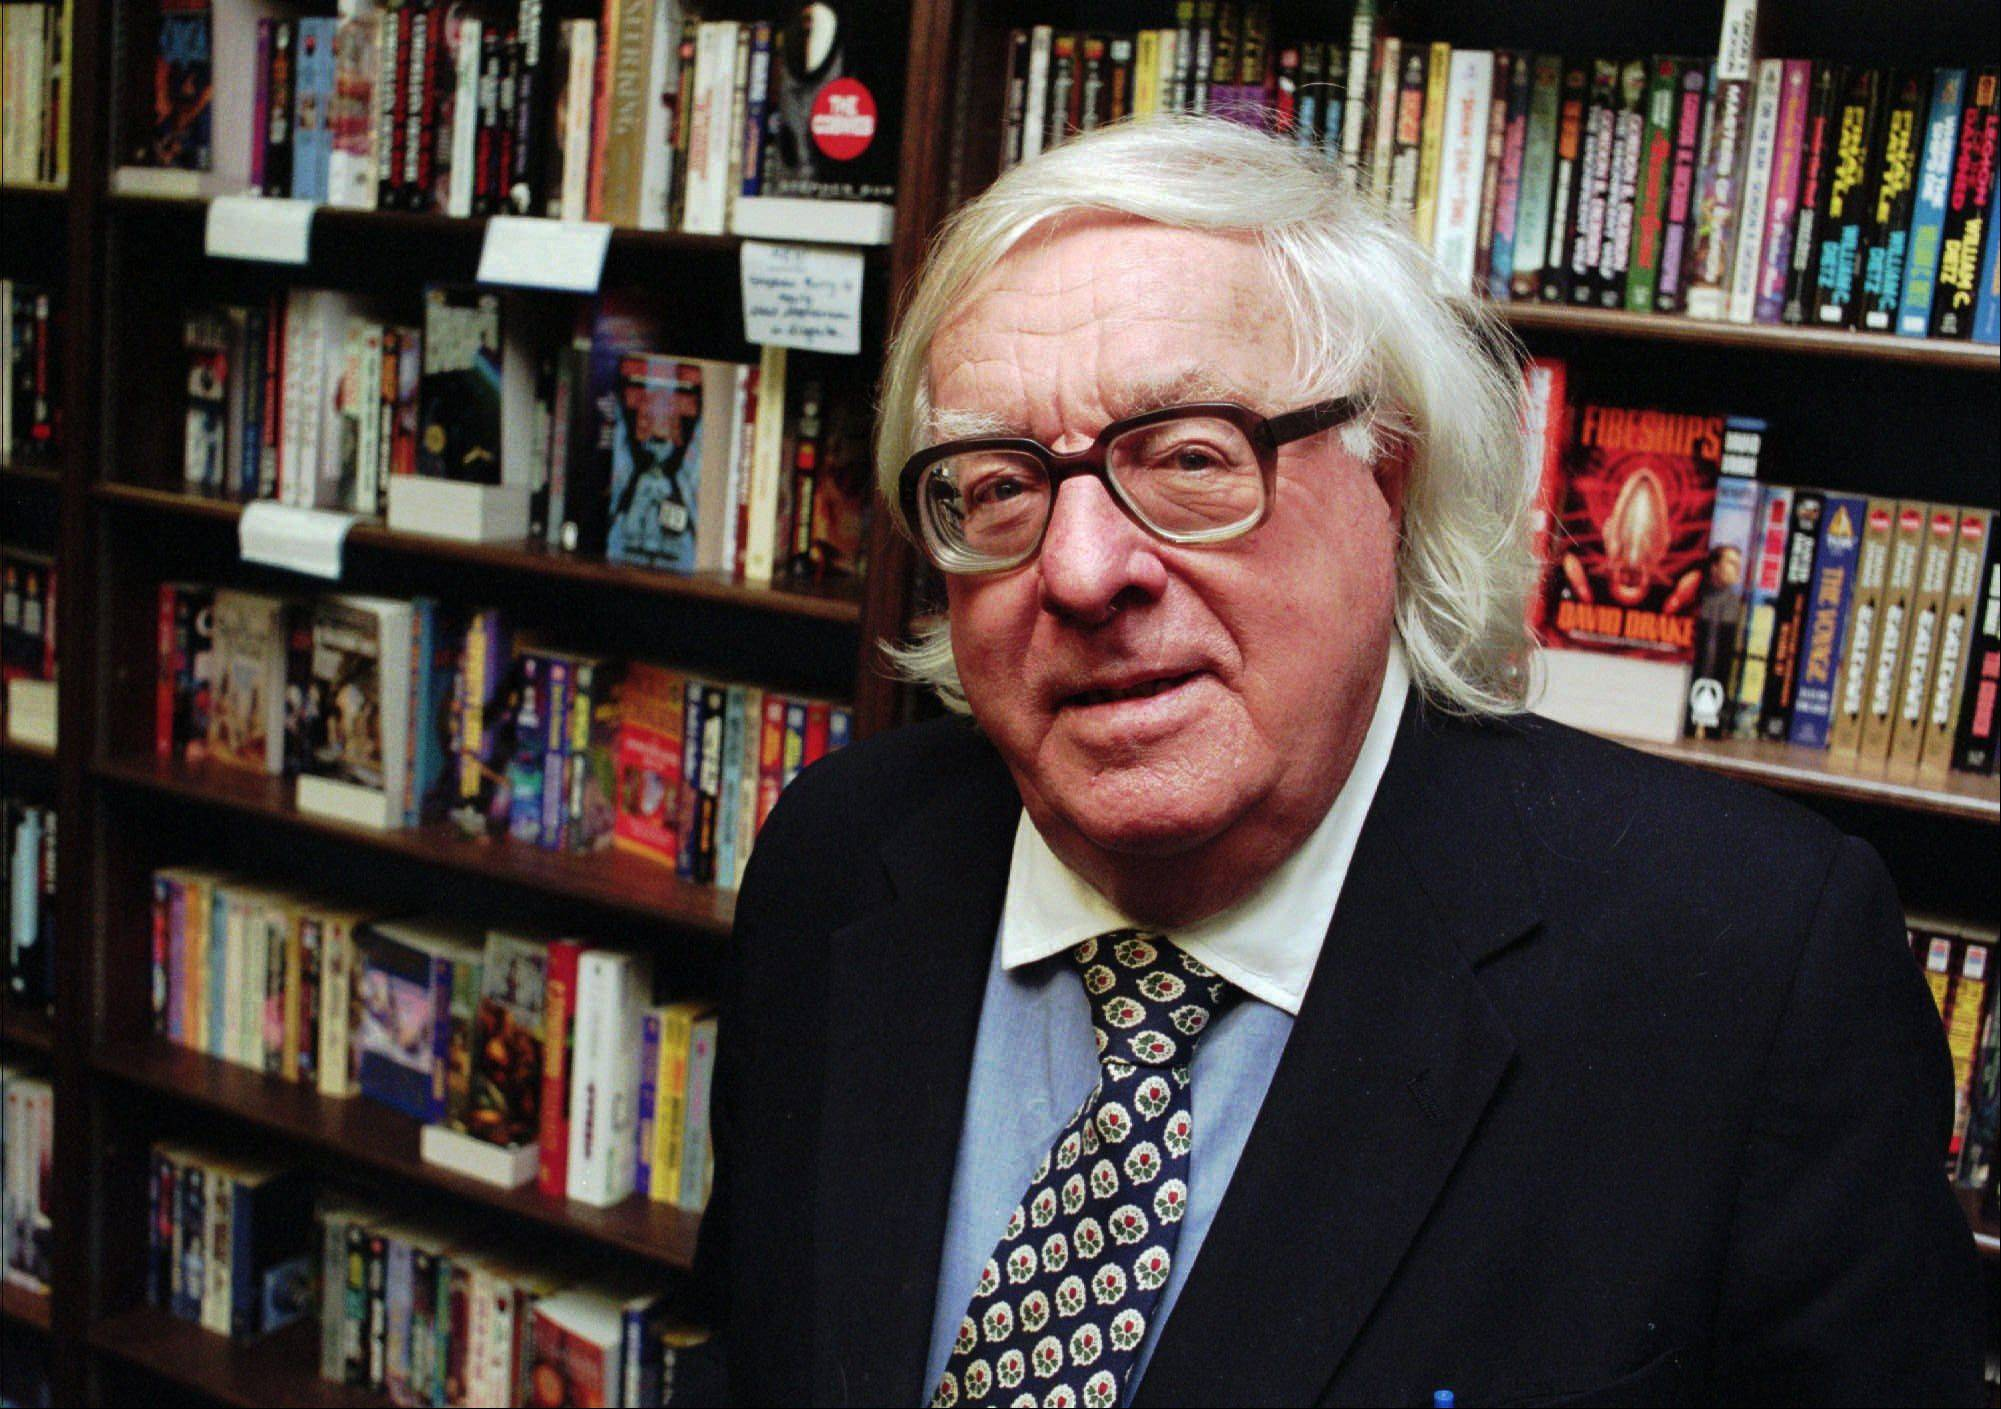 "This Jan. 29, 1997 file photo shows author Ray Bradbury at a signing for his book ""Quicker Than The Eye"" in Cupertino, Calif. Bradbury, who wrote everything from science-fiction and mystery to humor, died Tuesday, June 5, 2012 in Southern California. He was 91."